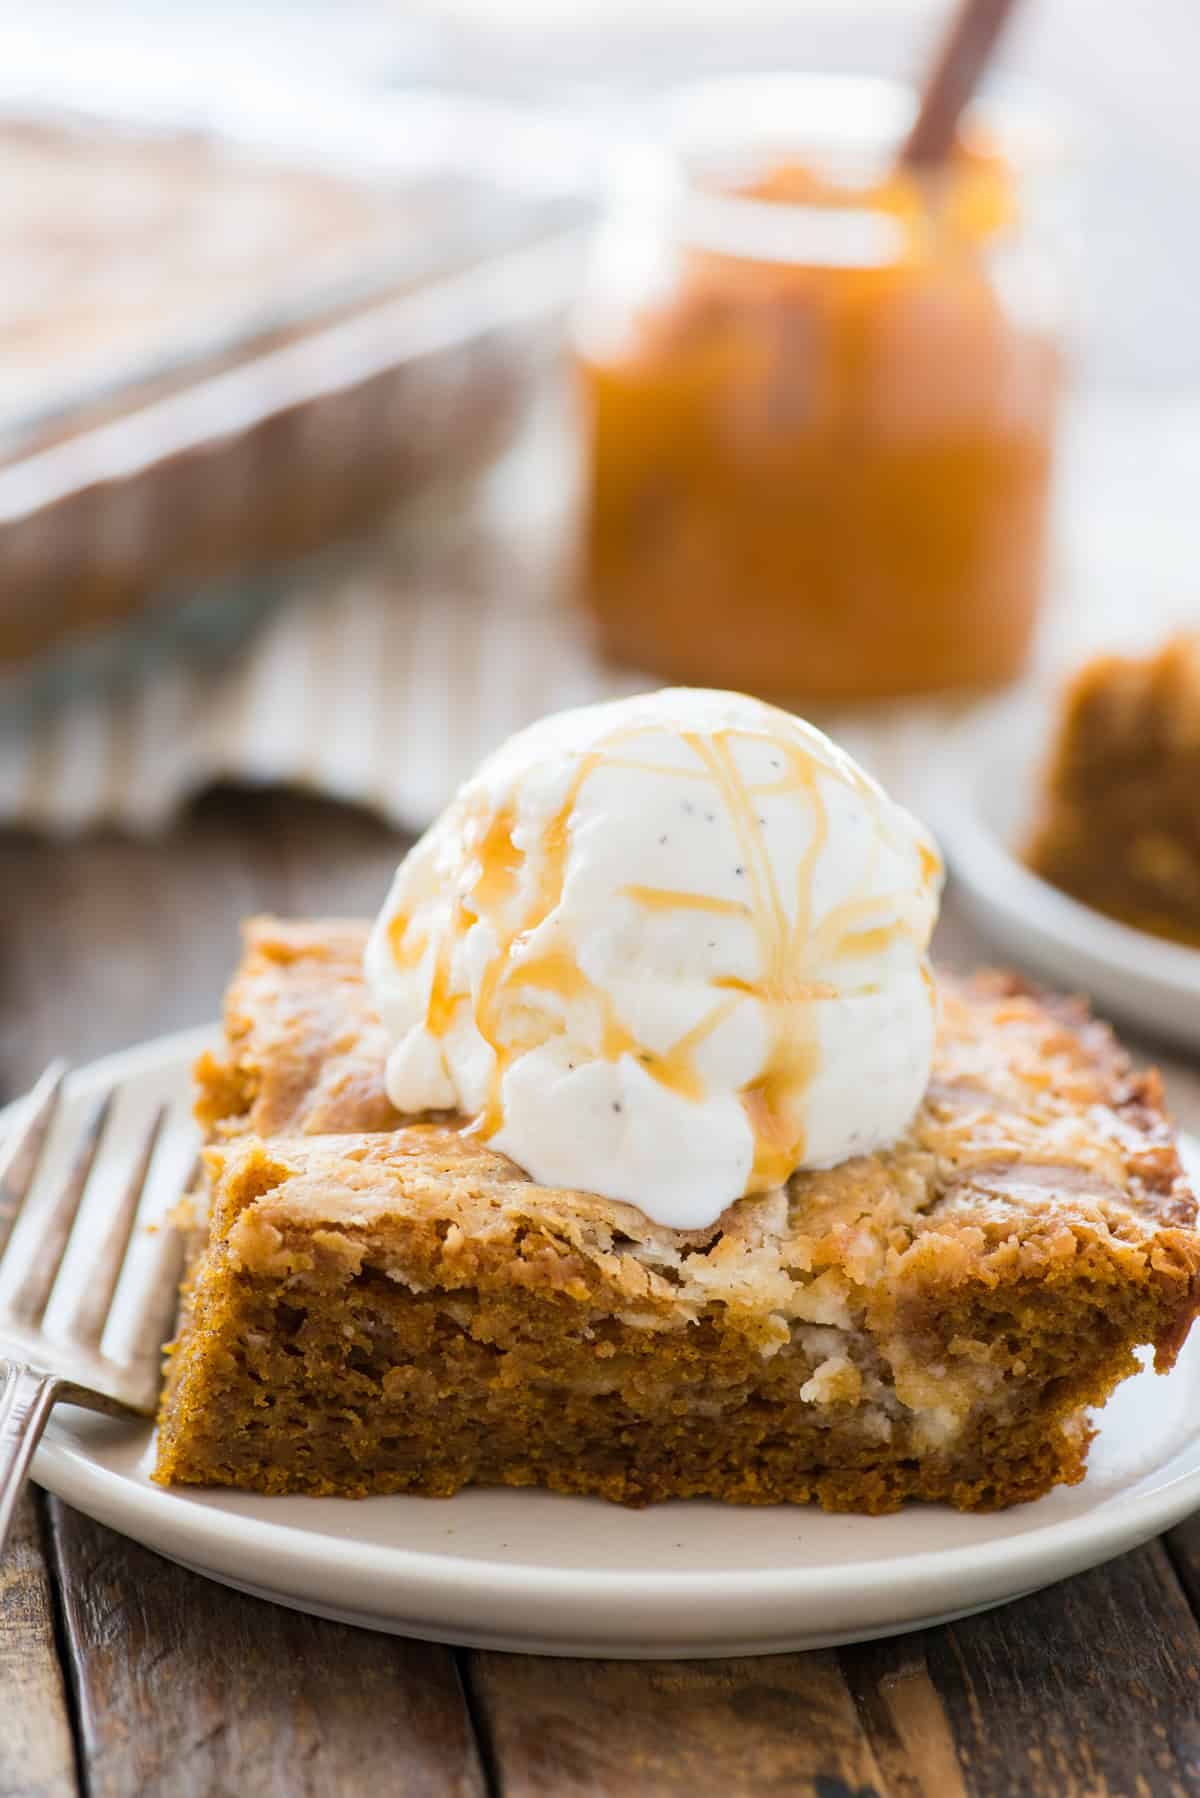 Slice of pumpkin earthquake cake on white plate with scoop of vanilla ice cream on top